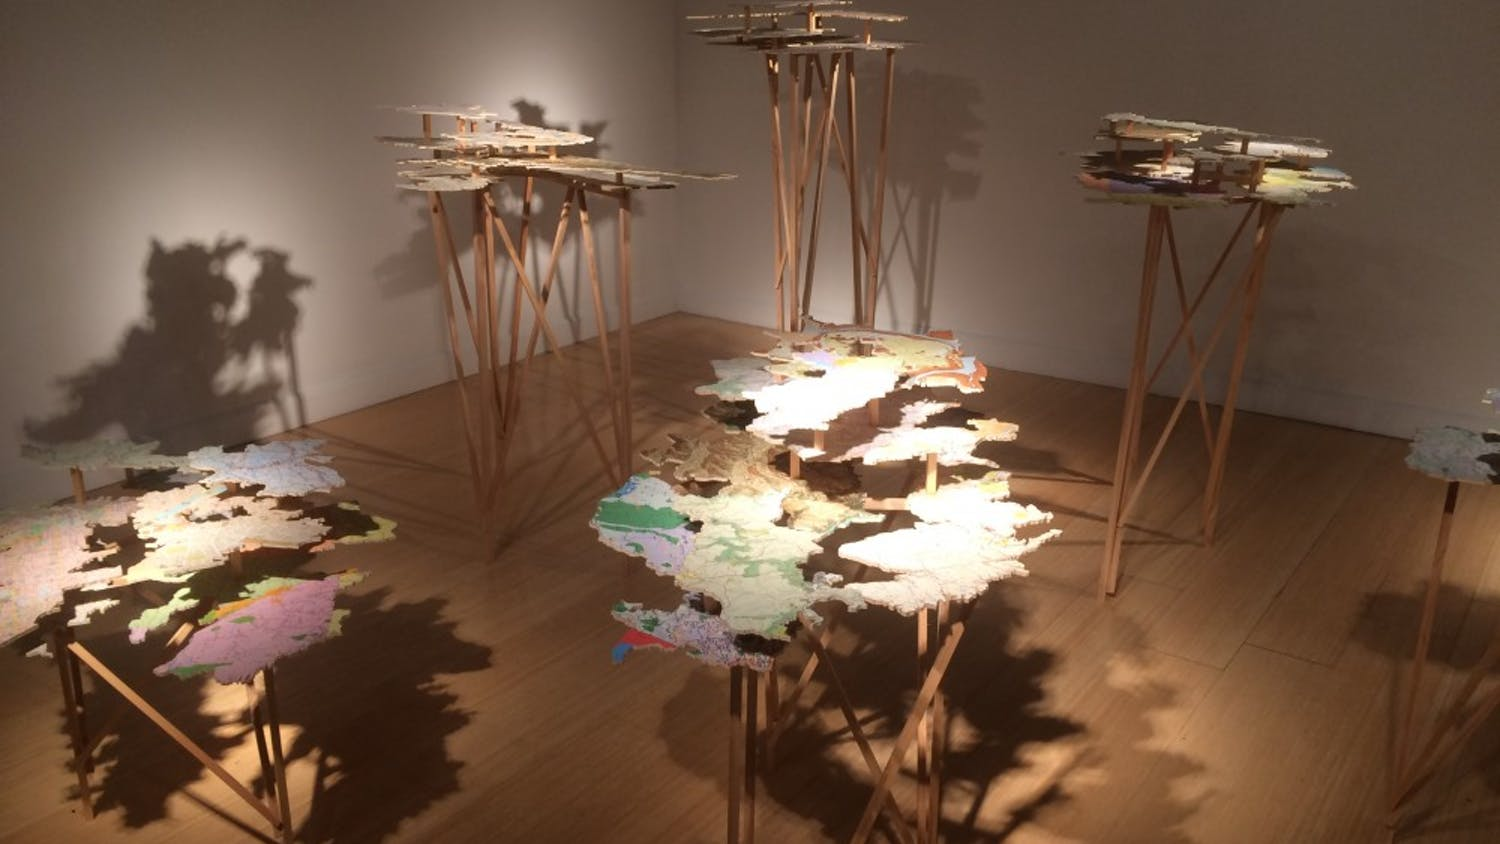 The map and plywood structures of the Fingerreisen exhibitstand erect in the McMaster Gallery.